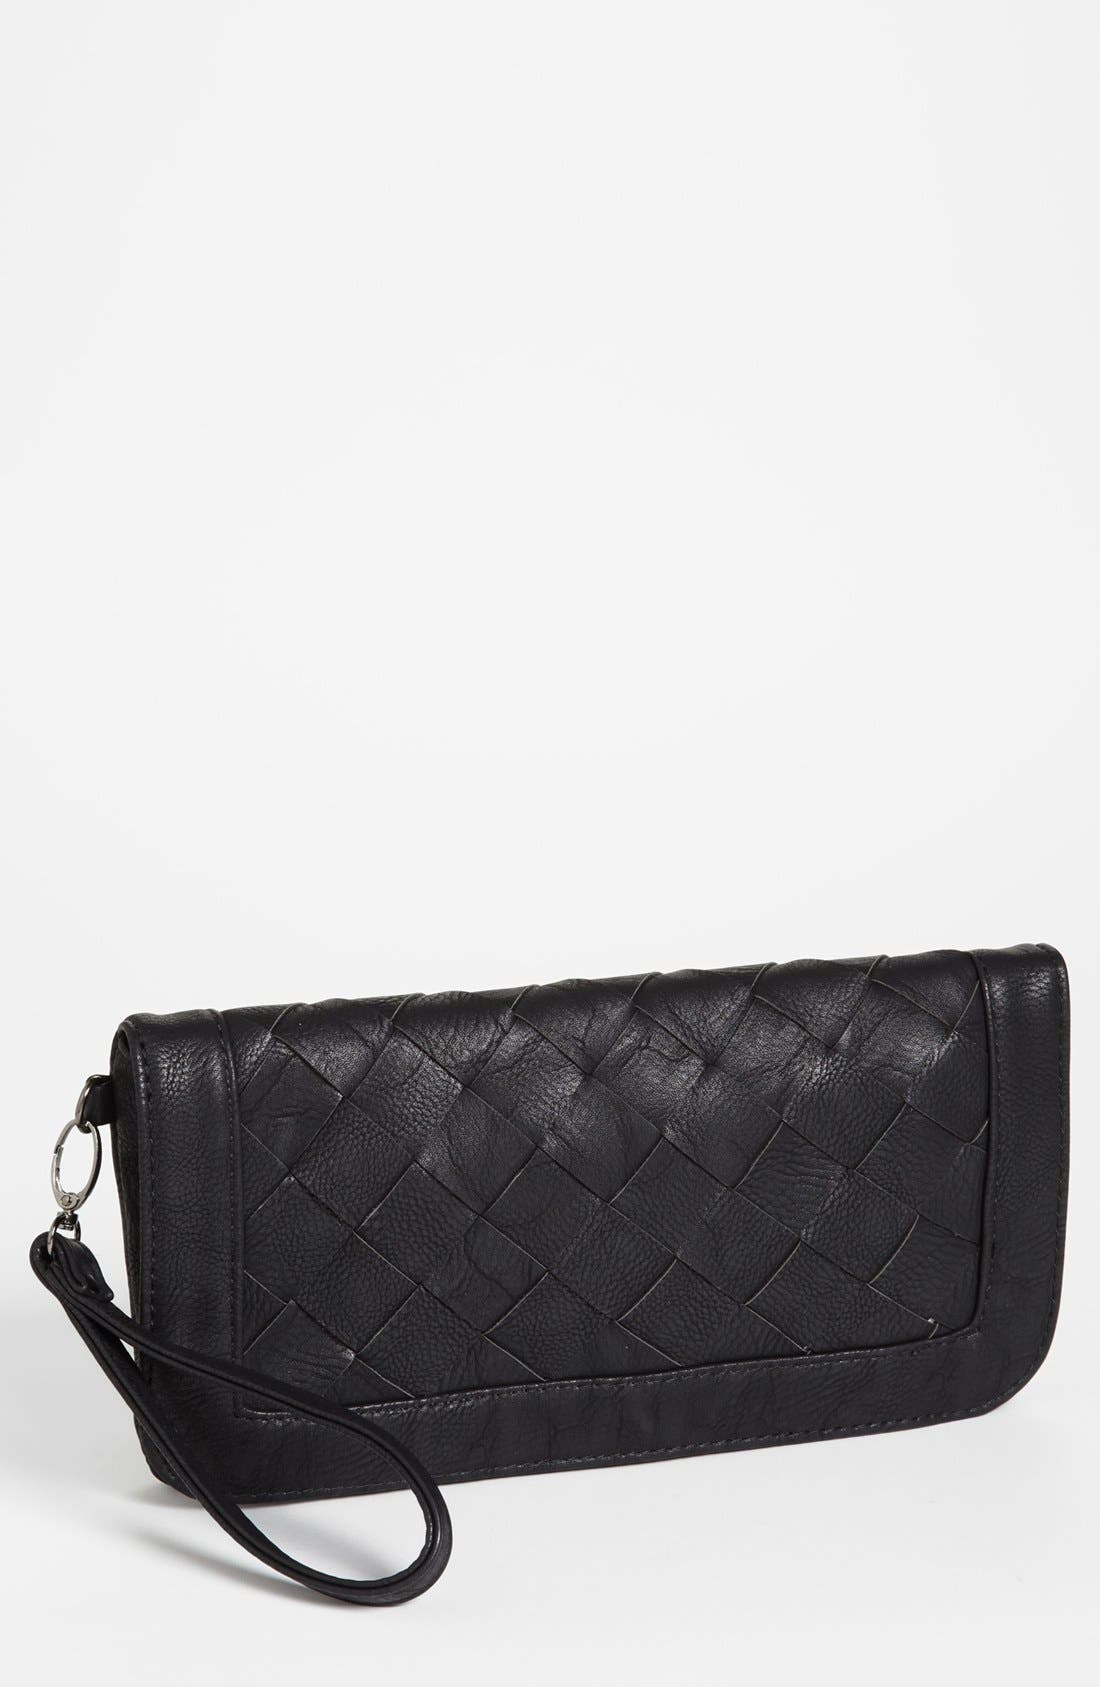 Alternate Image 1 Selected - Natasha Couture Woven Faux Leather Clutch